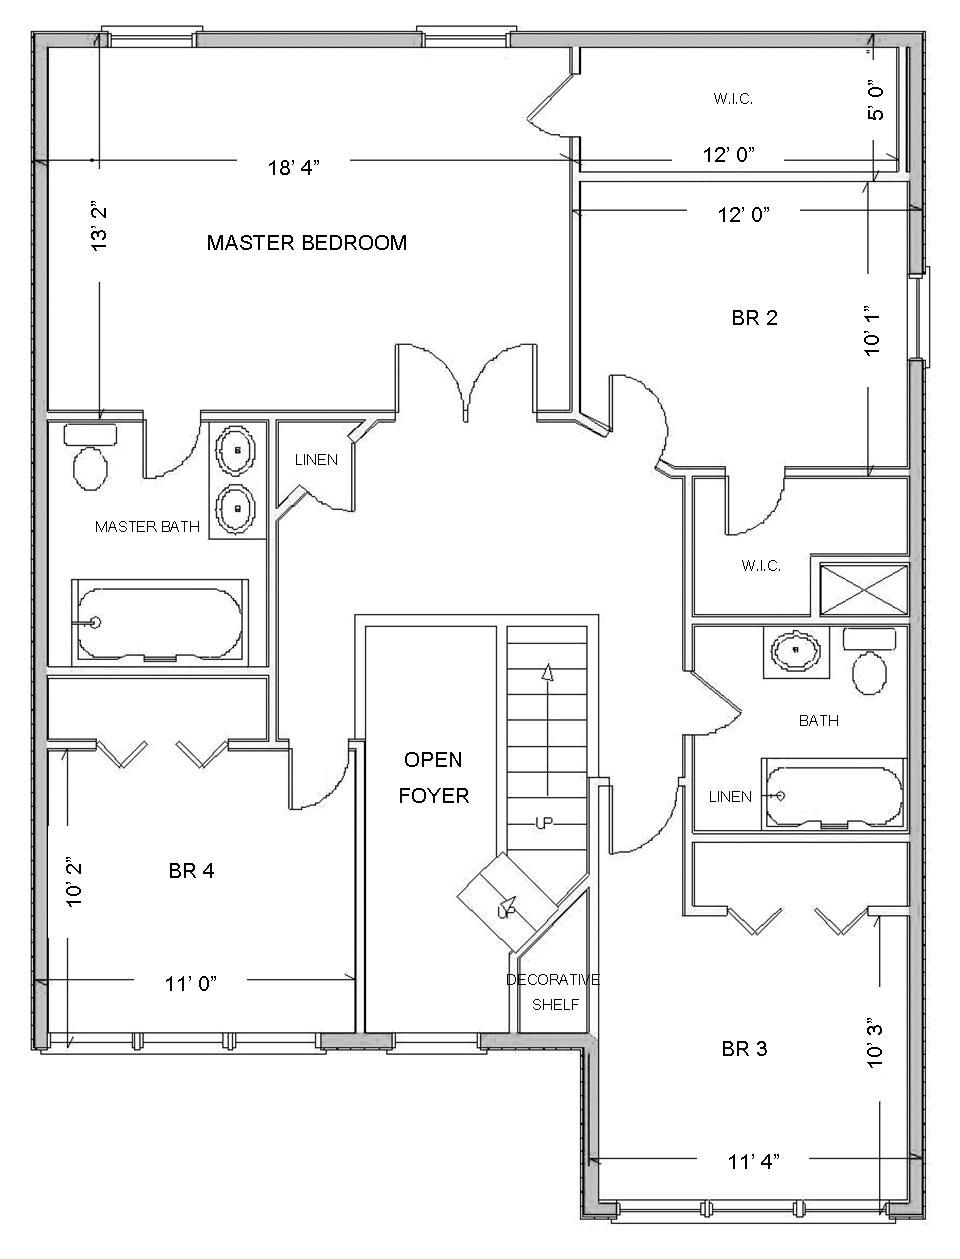 Master bedroom drawing - Attractive Floor Plans Based True Story With Smart Draw Floor Plan Using White Blank Print Displaying Master Bathmaster Bedroomsdesign